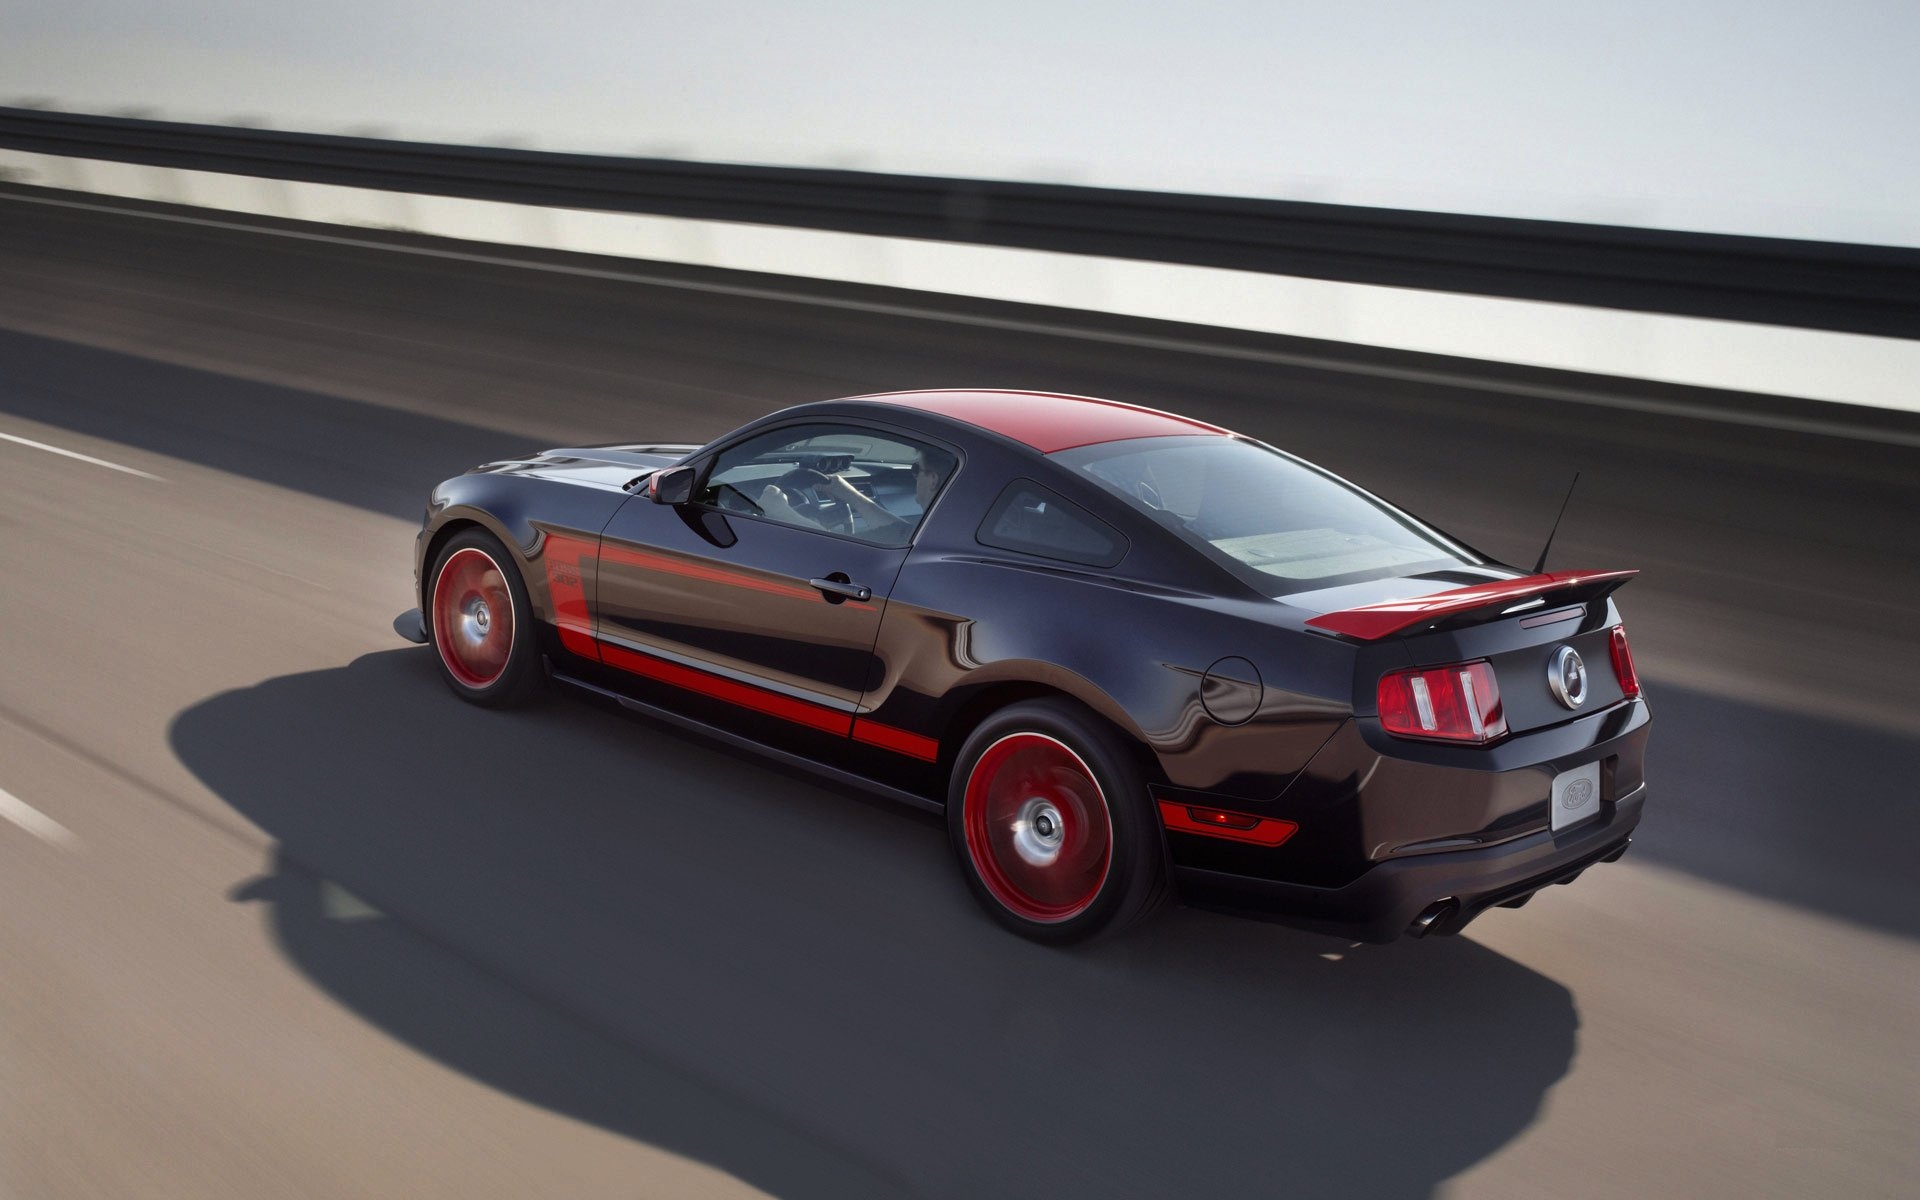 ford mustang hd wallpapers collection cool cars wallpapers for desktop. Black Bedroom Furniture Sets. Home Design Ideas